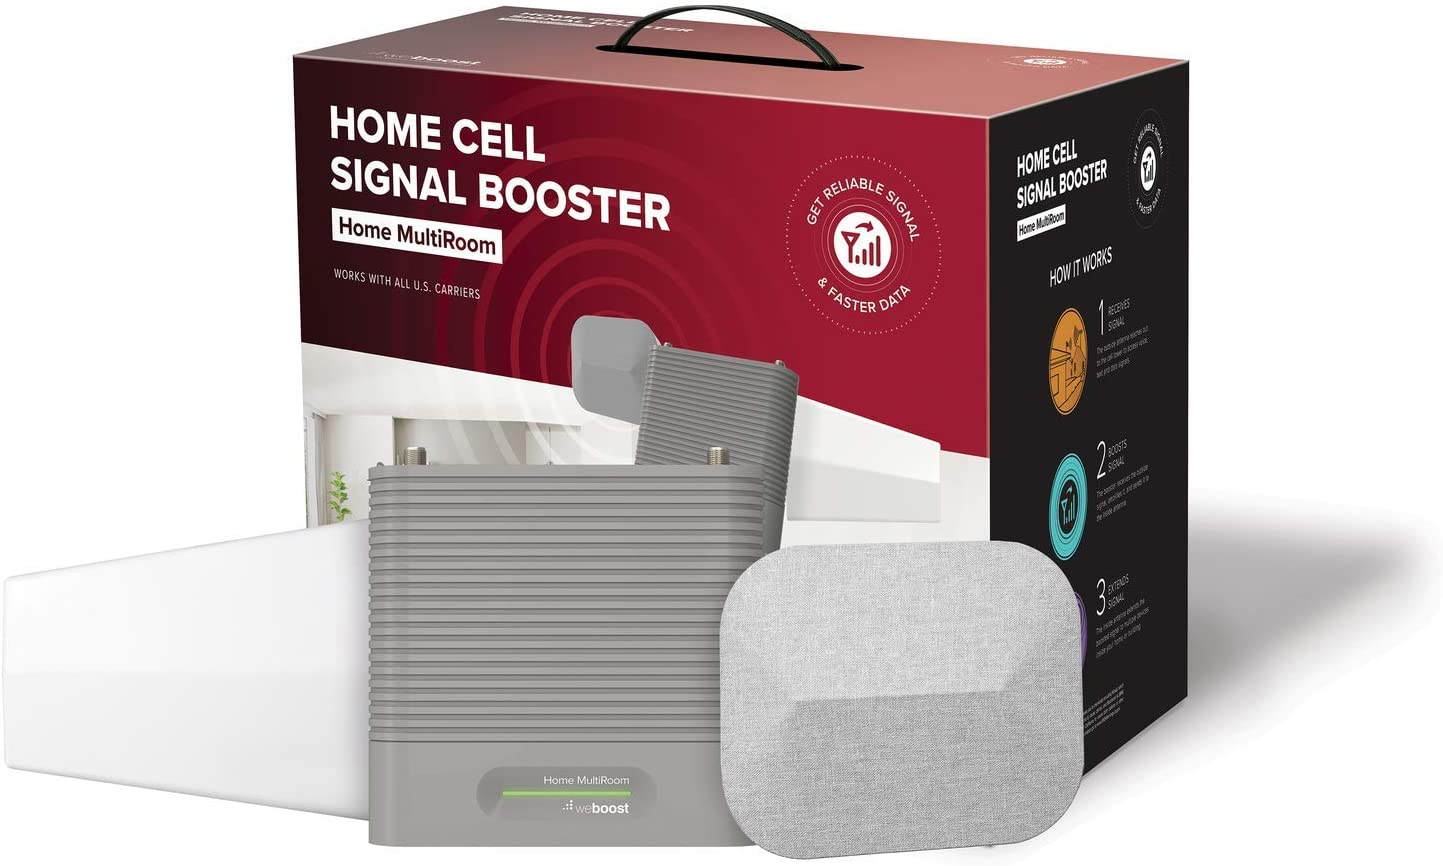 Cell Phone Signal Booster weBoost Home MultiRoom 470144 Cell Signal Booster Kit /& Wilson Electronics Pole Mount for Outside Home Antenna